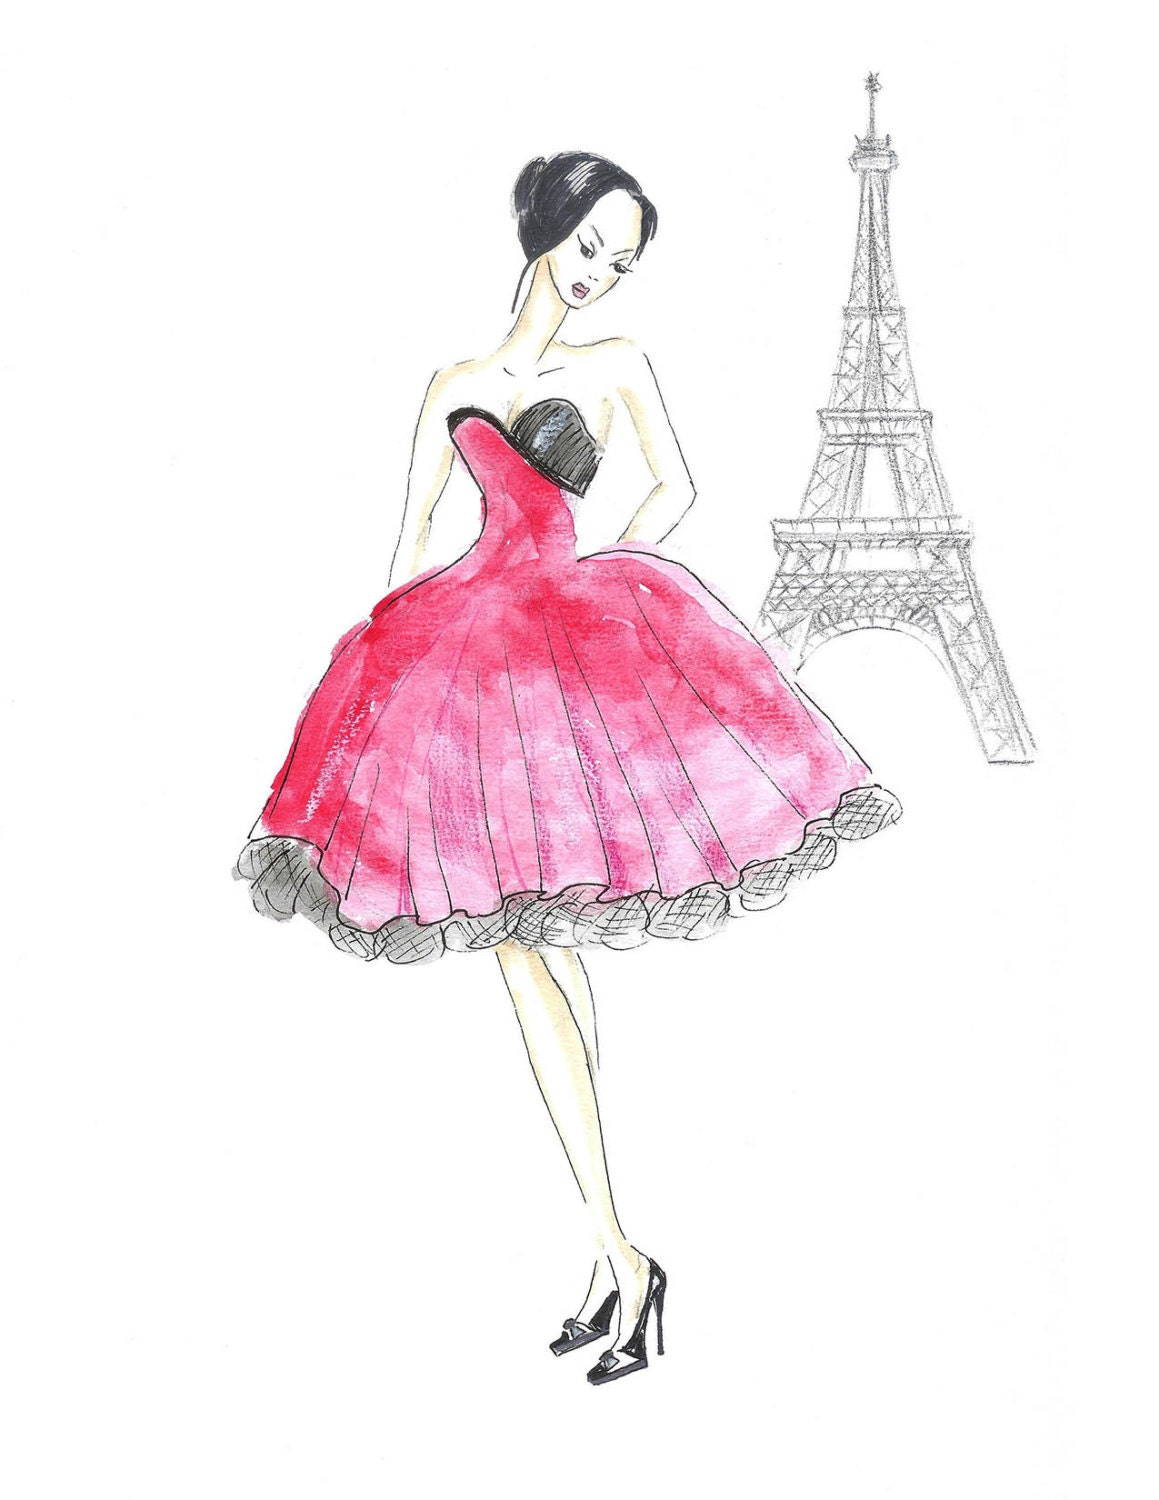 Red dress fashion illustration paris hot pink watercolor by zoia